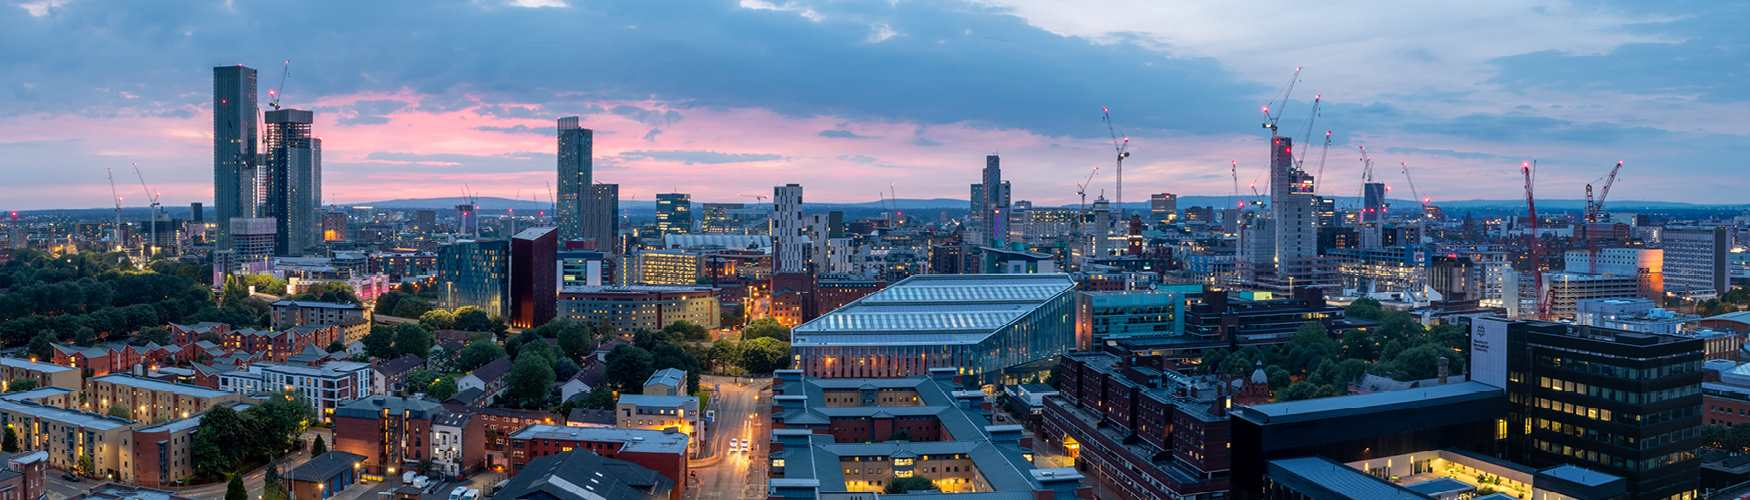 Best UK city for business